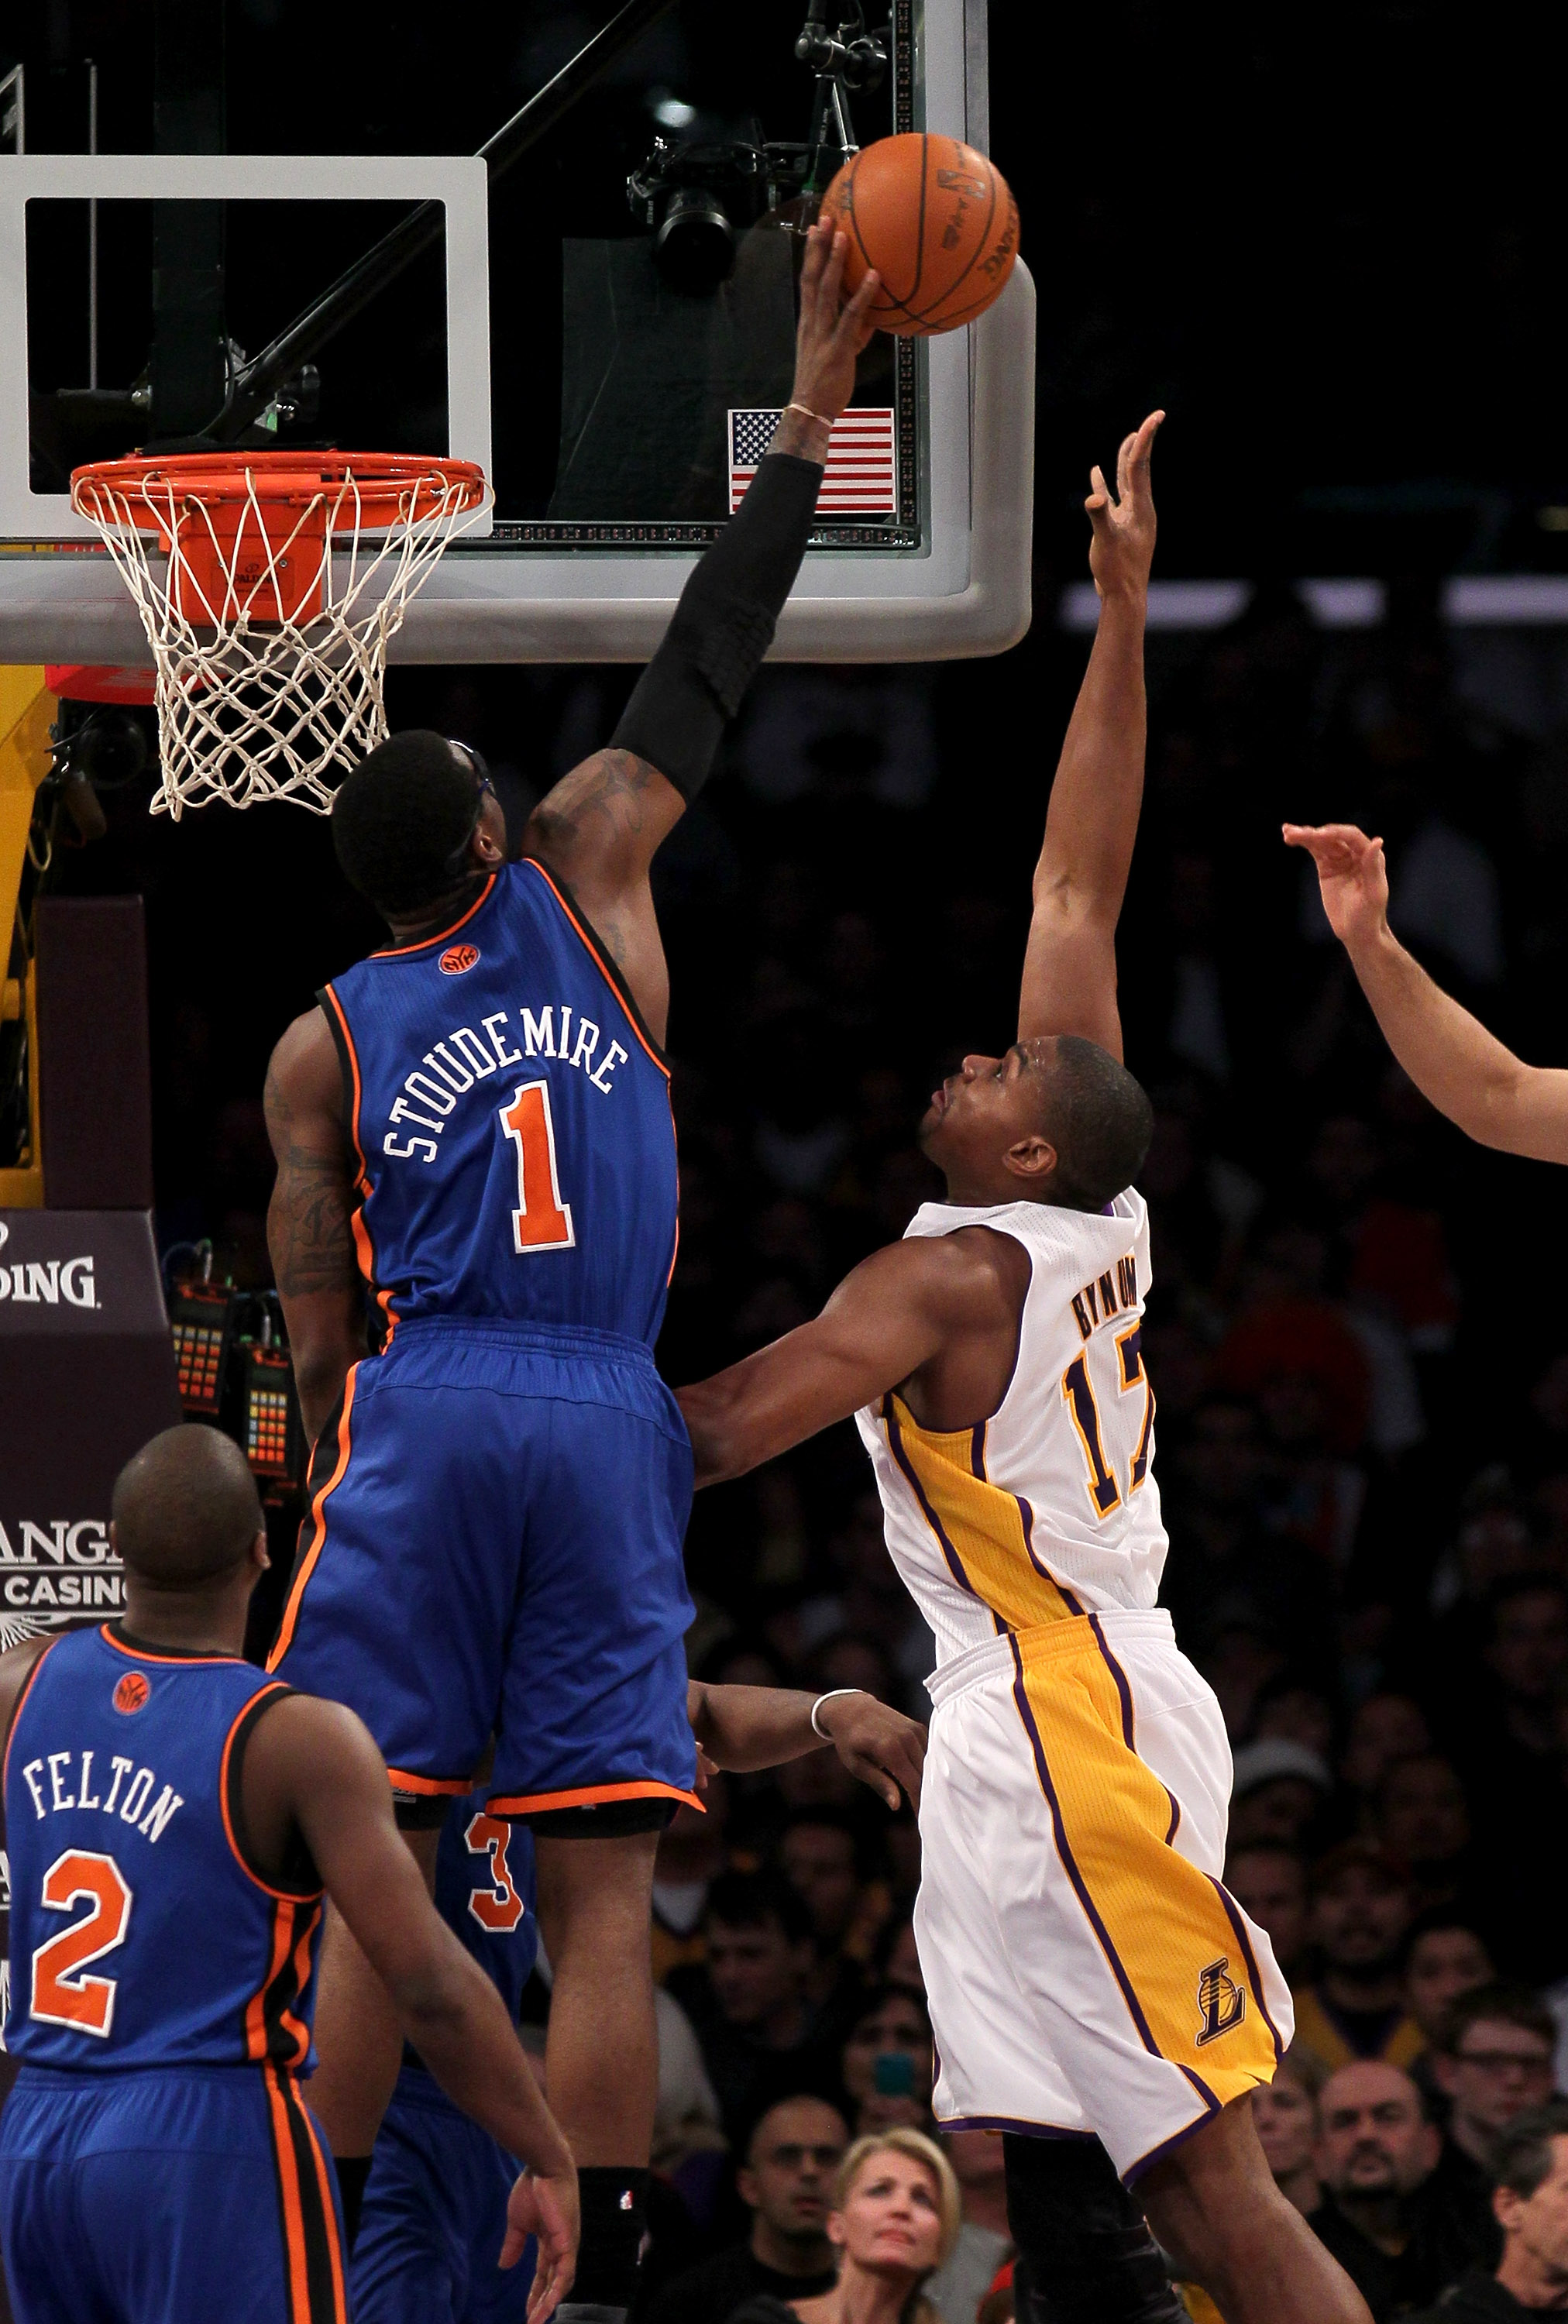 LOS ANGELES, CA - JANUARY 09:  Amar'e Stoudemire #1 of the New York Knicks blocks a shot by Andrew Bynum #17 of the Los Angeles Lakers at Staples Center on January 9, 2011 in Los Angeles, California.  NOTE TO USER: User expressly acknowledges and agrees t